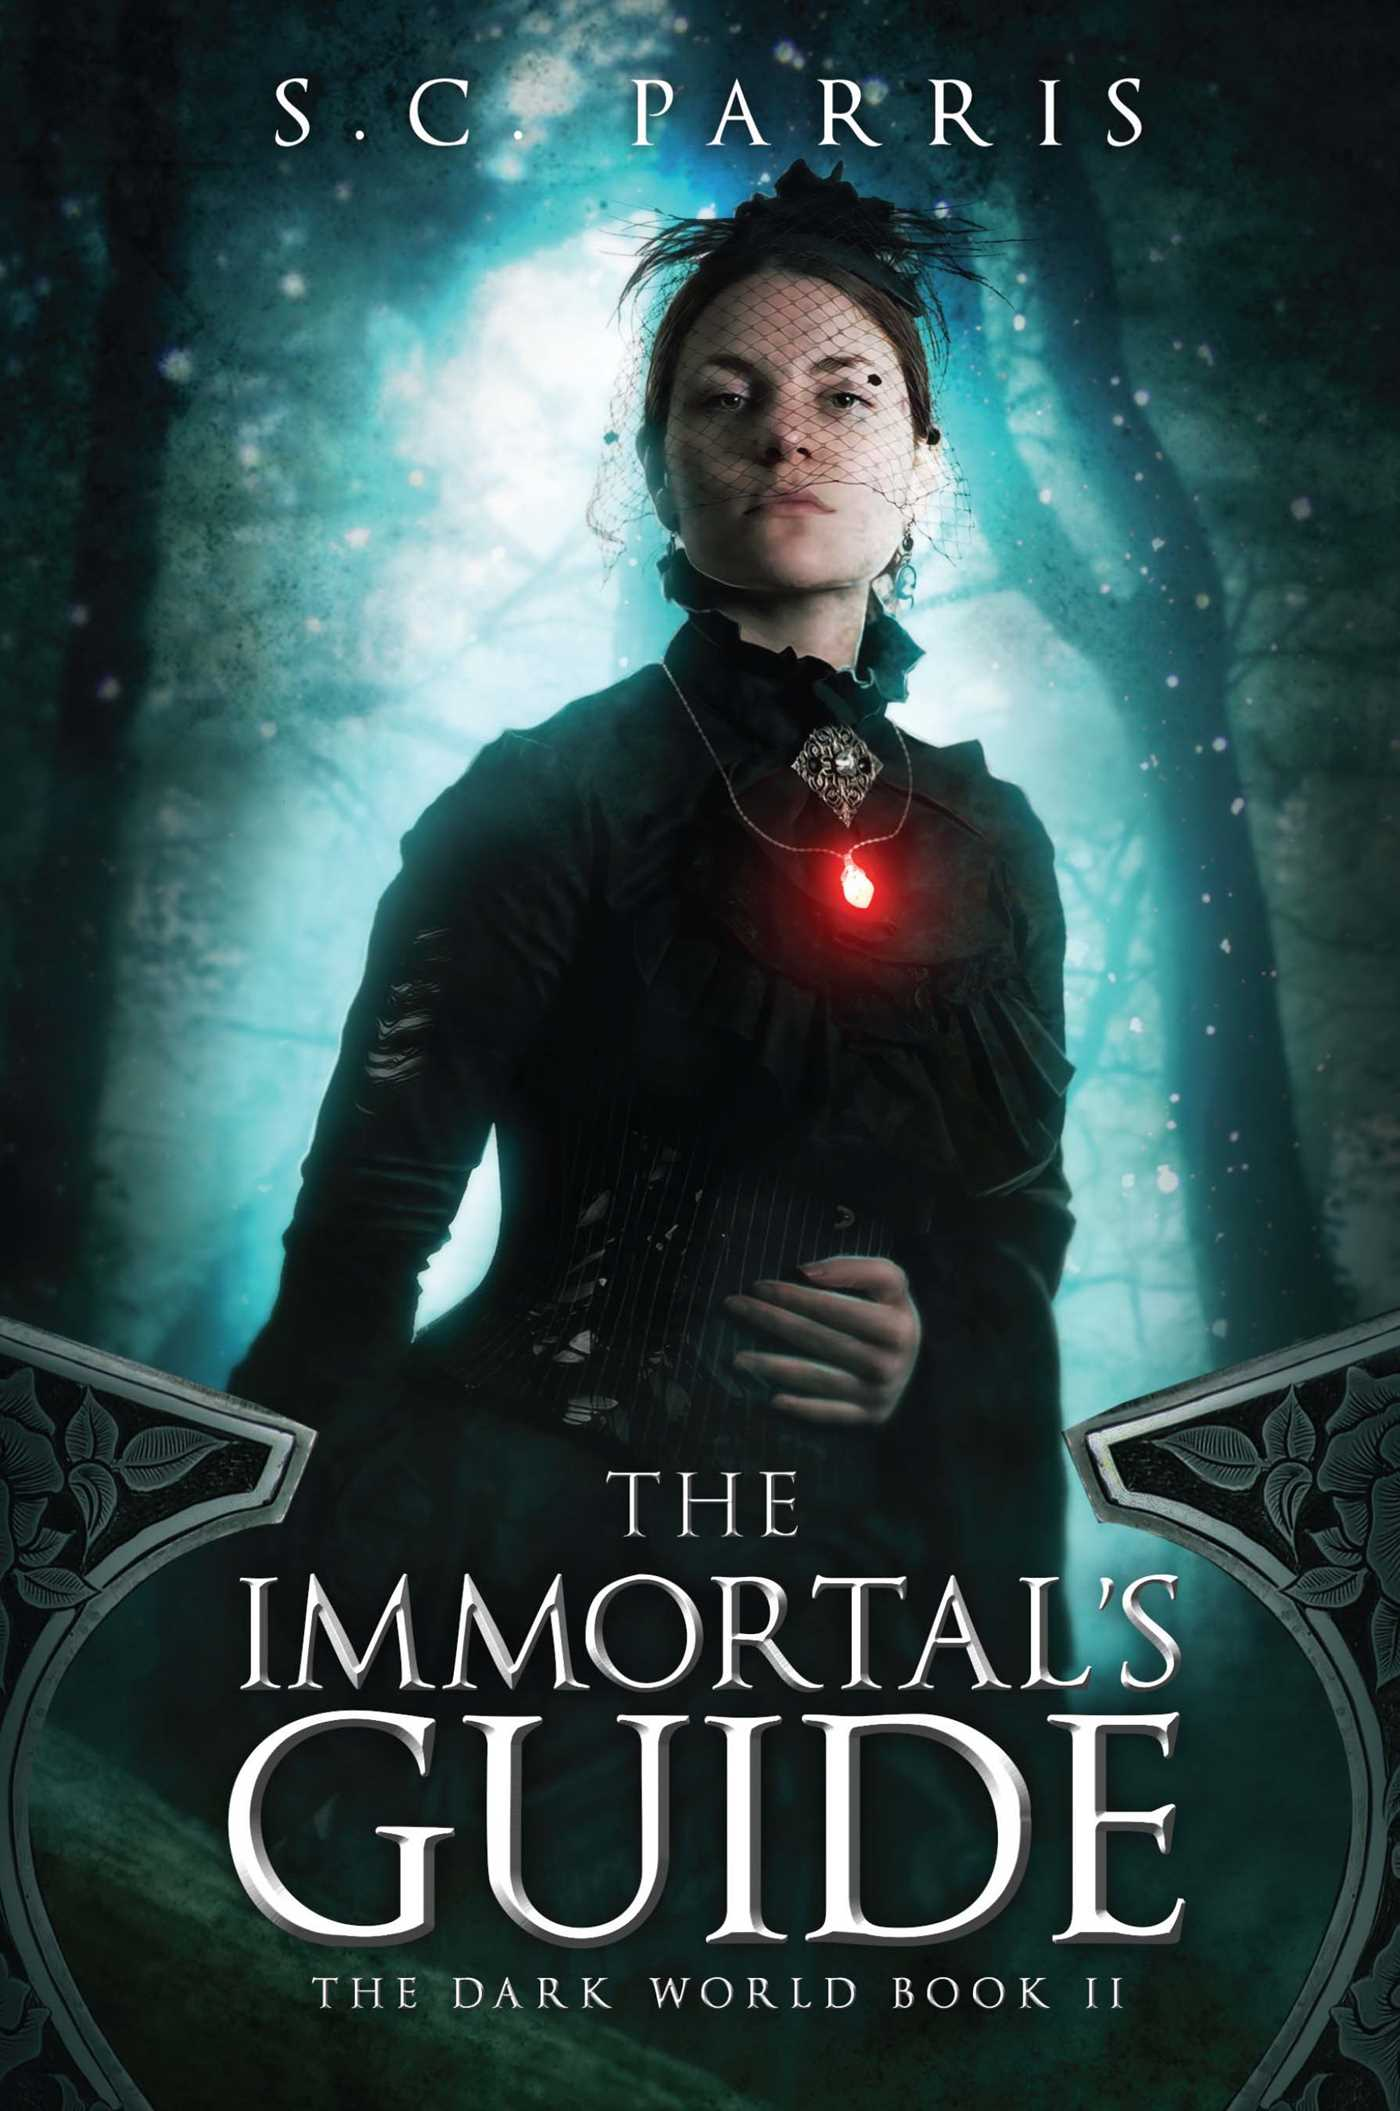 The immortals guide 9781682610817 hr